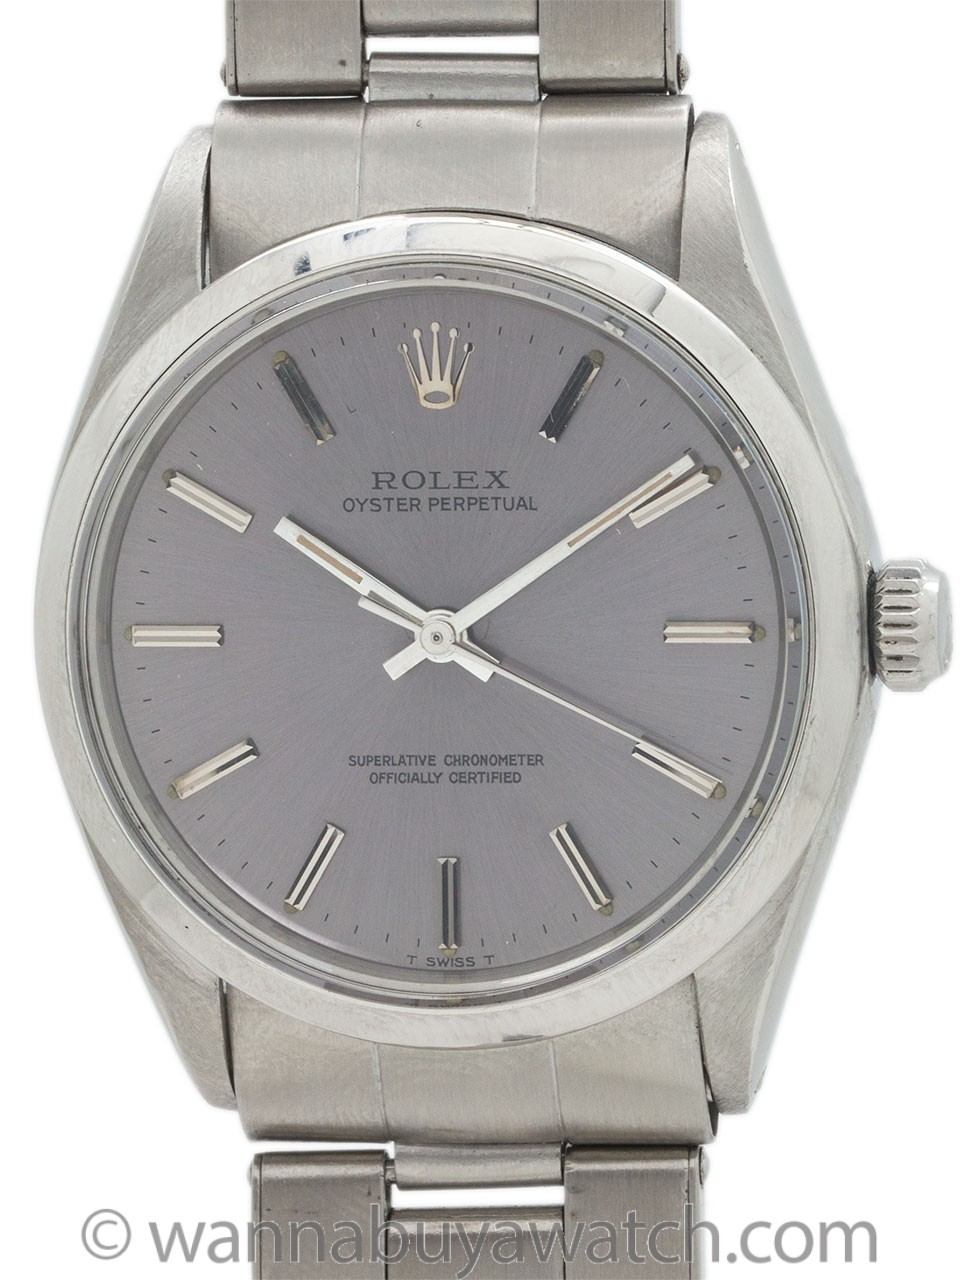 Rolex ref 1002 Oyster Perpetual Stainless Steel circa 1967